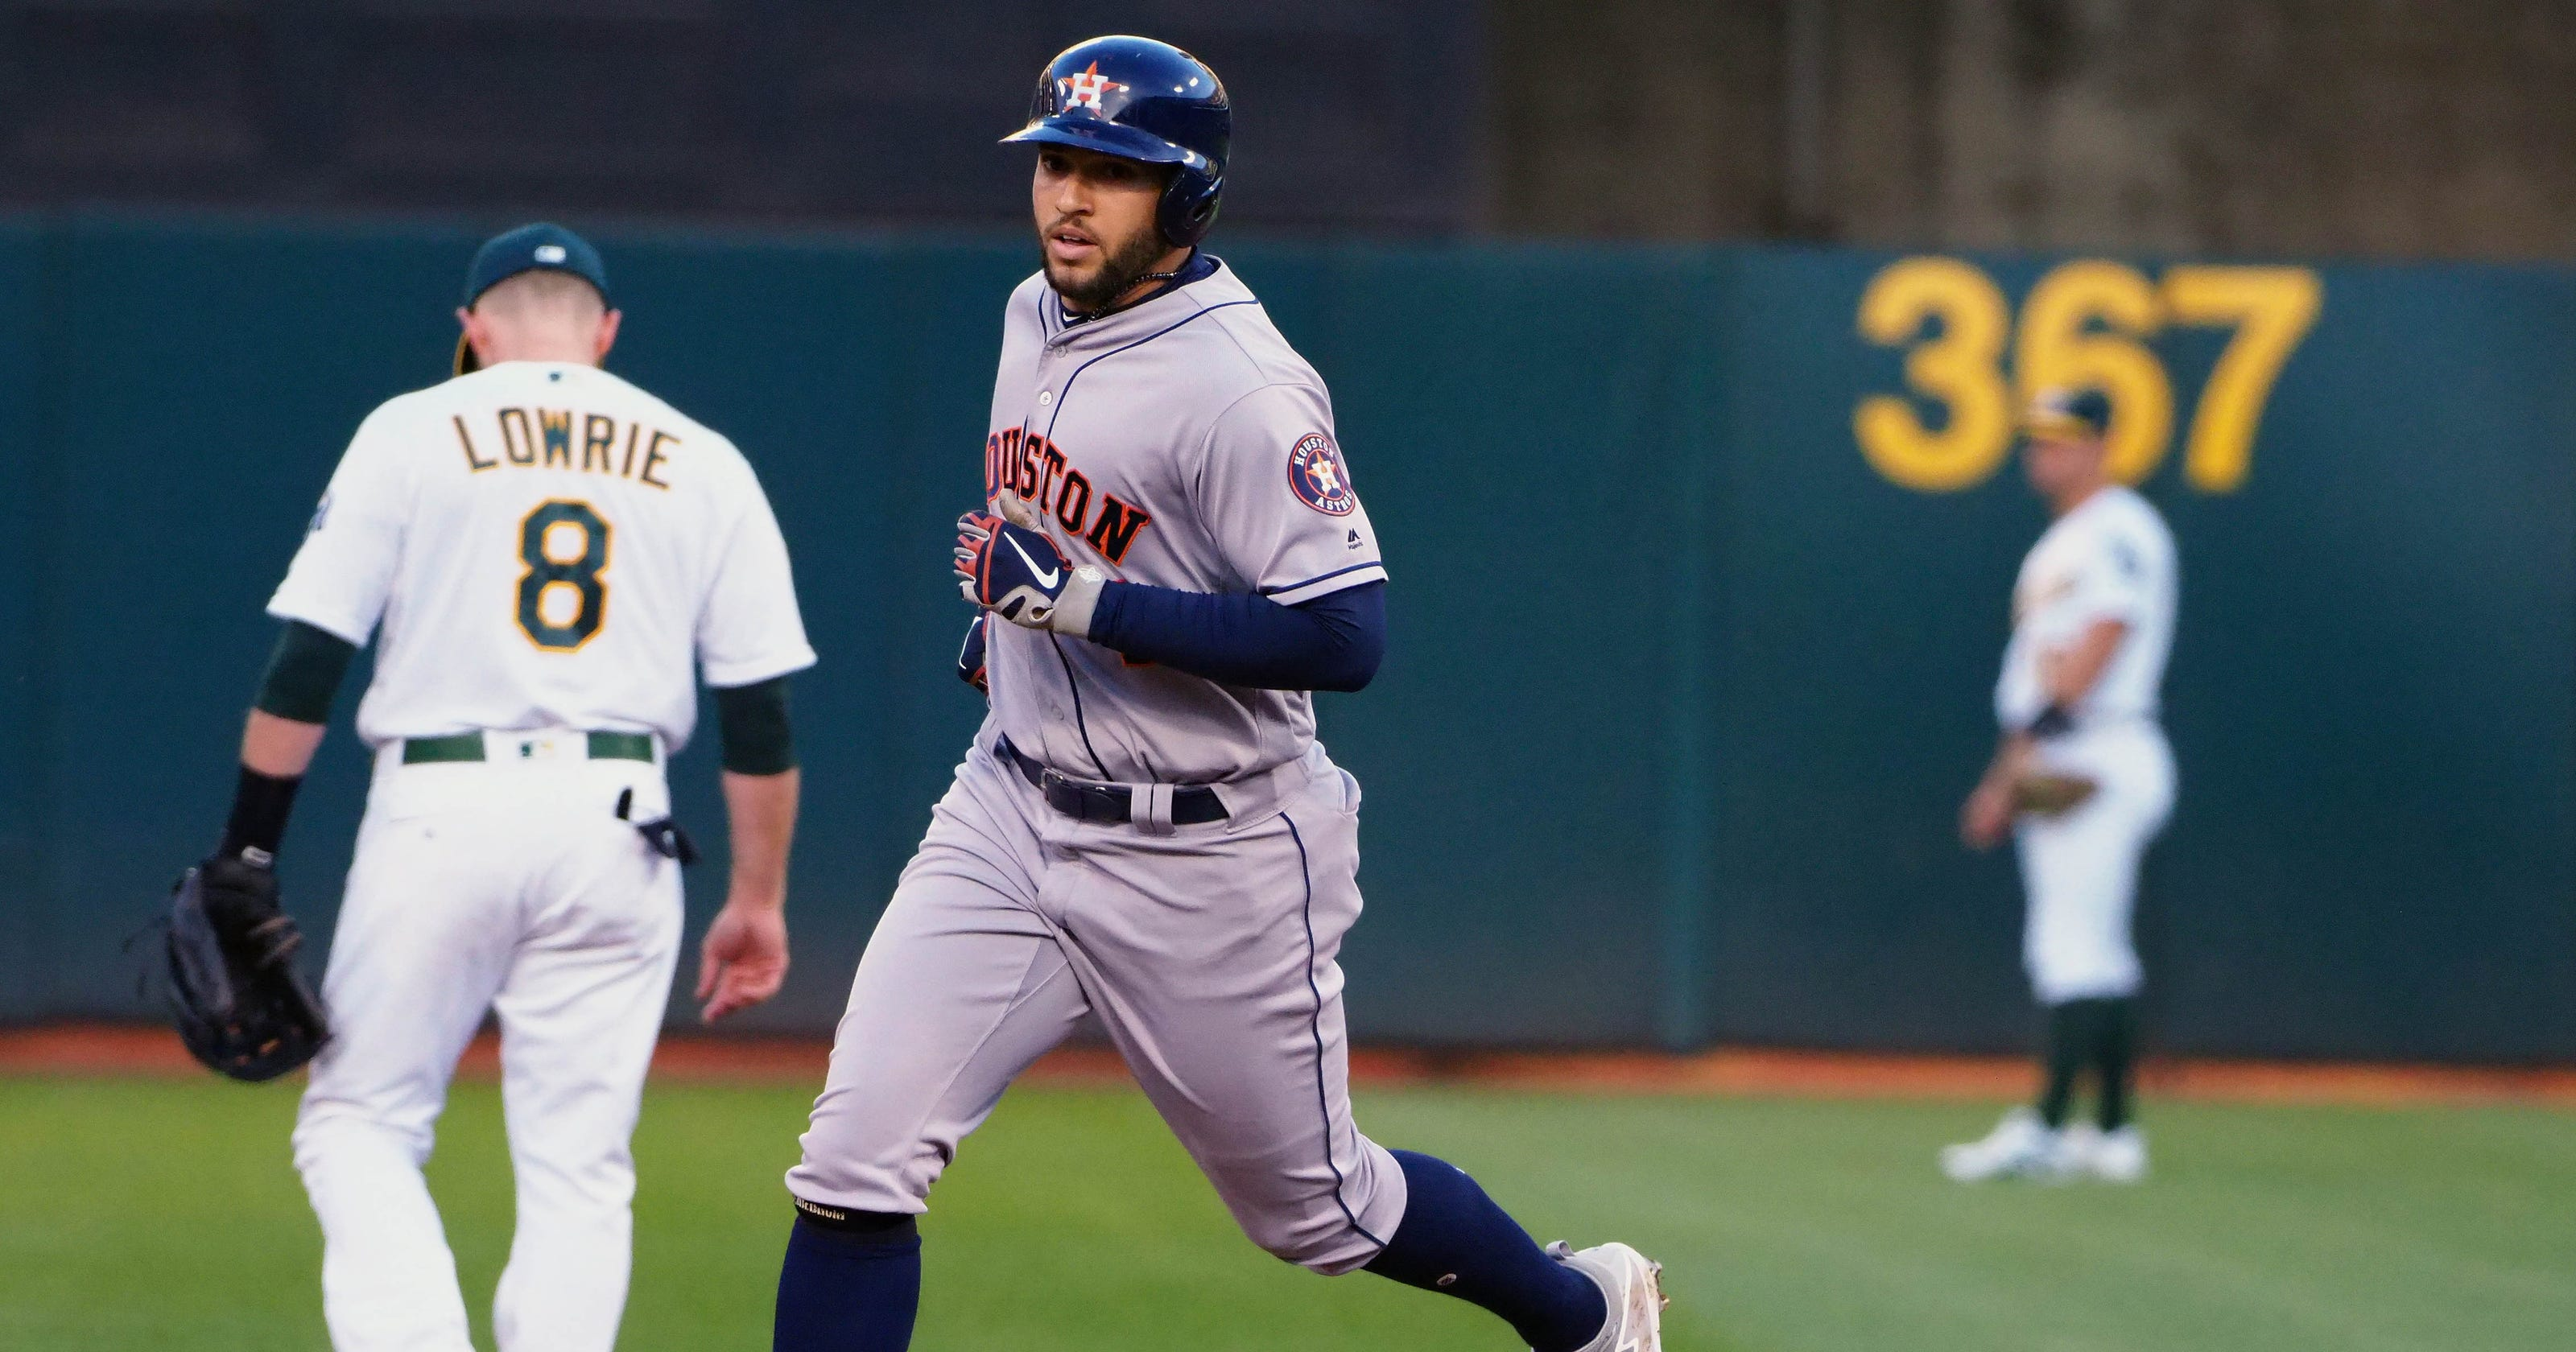 c51cde96d George Springer ties Houston Astros hits record in rout of Oakland Athletics